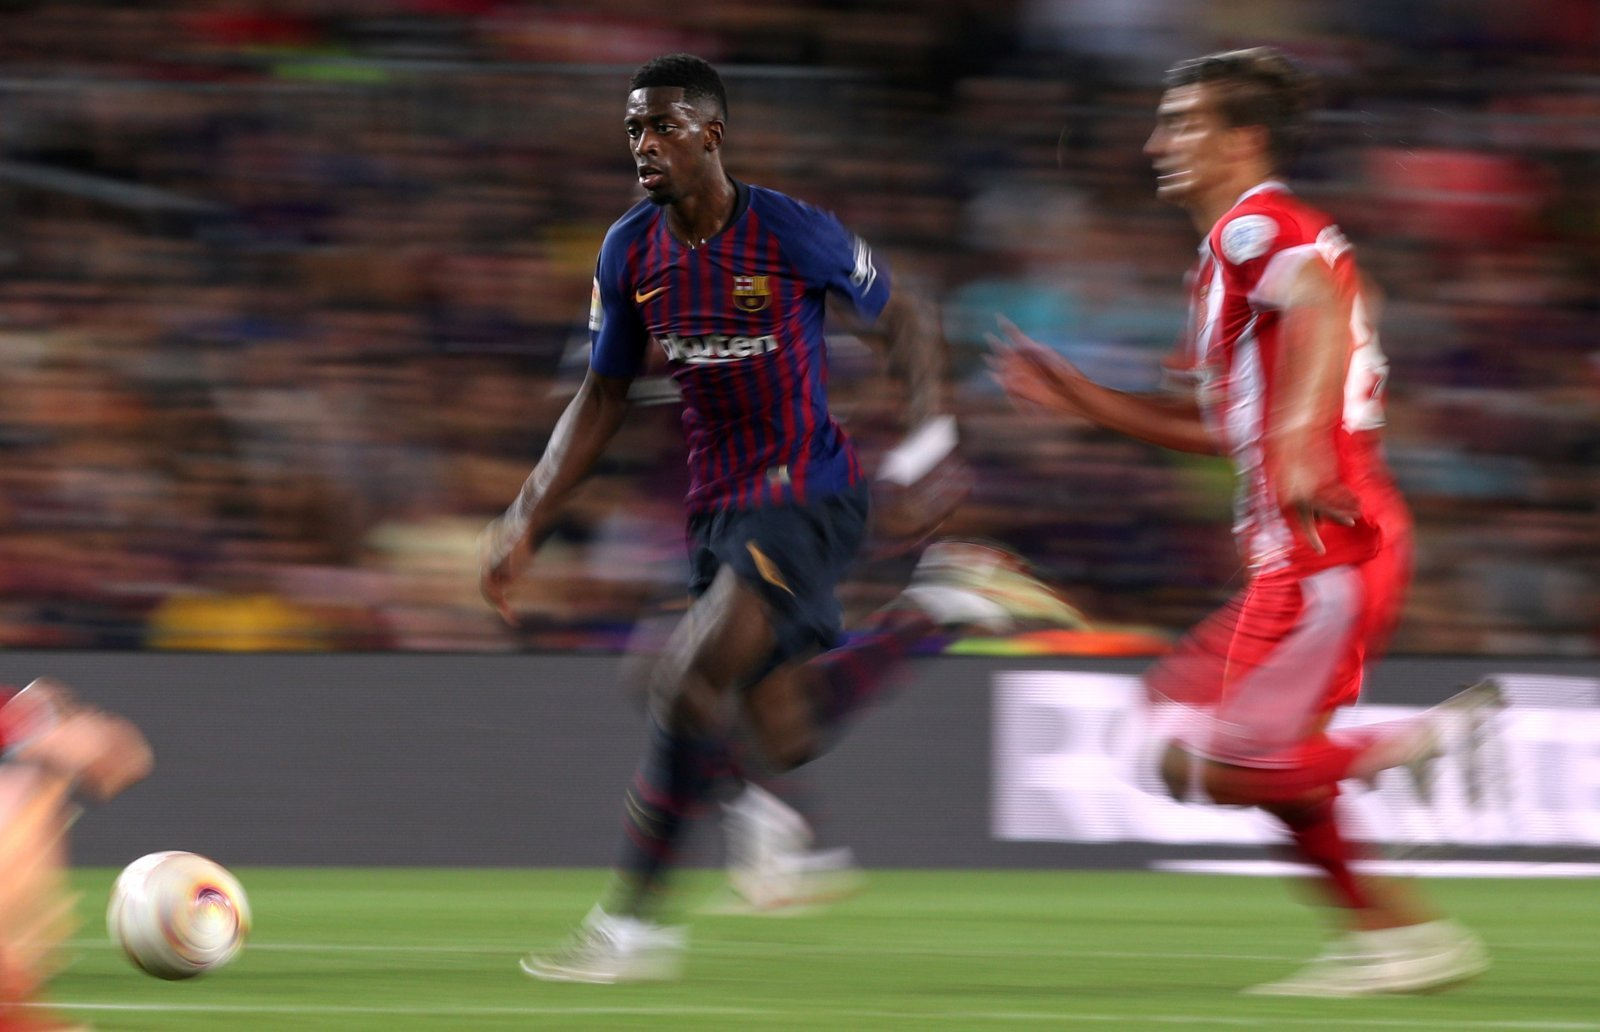 Nelson Semedo states that Ousmane Dembele is fully committed to Barcelona